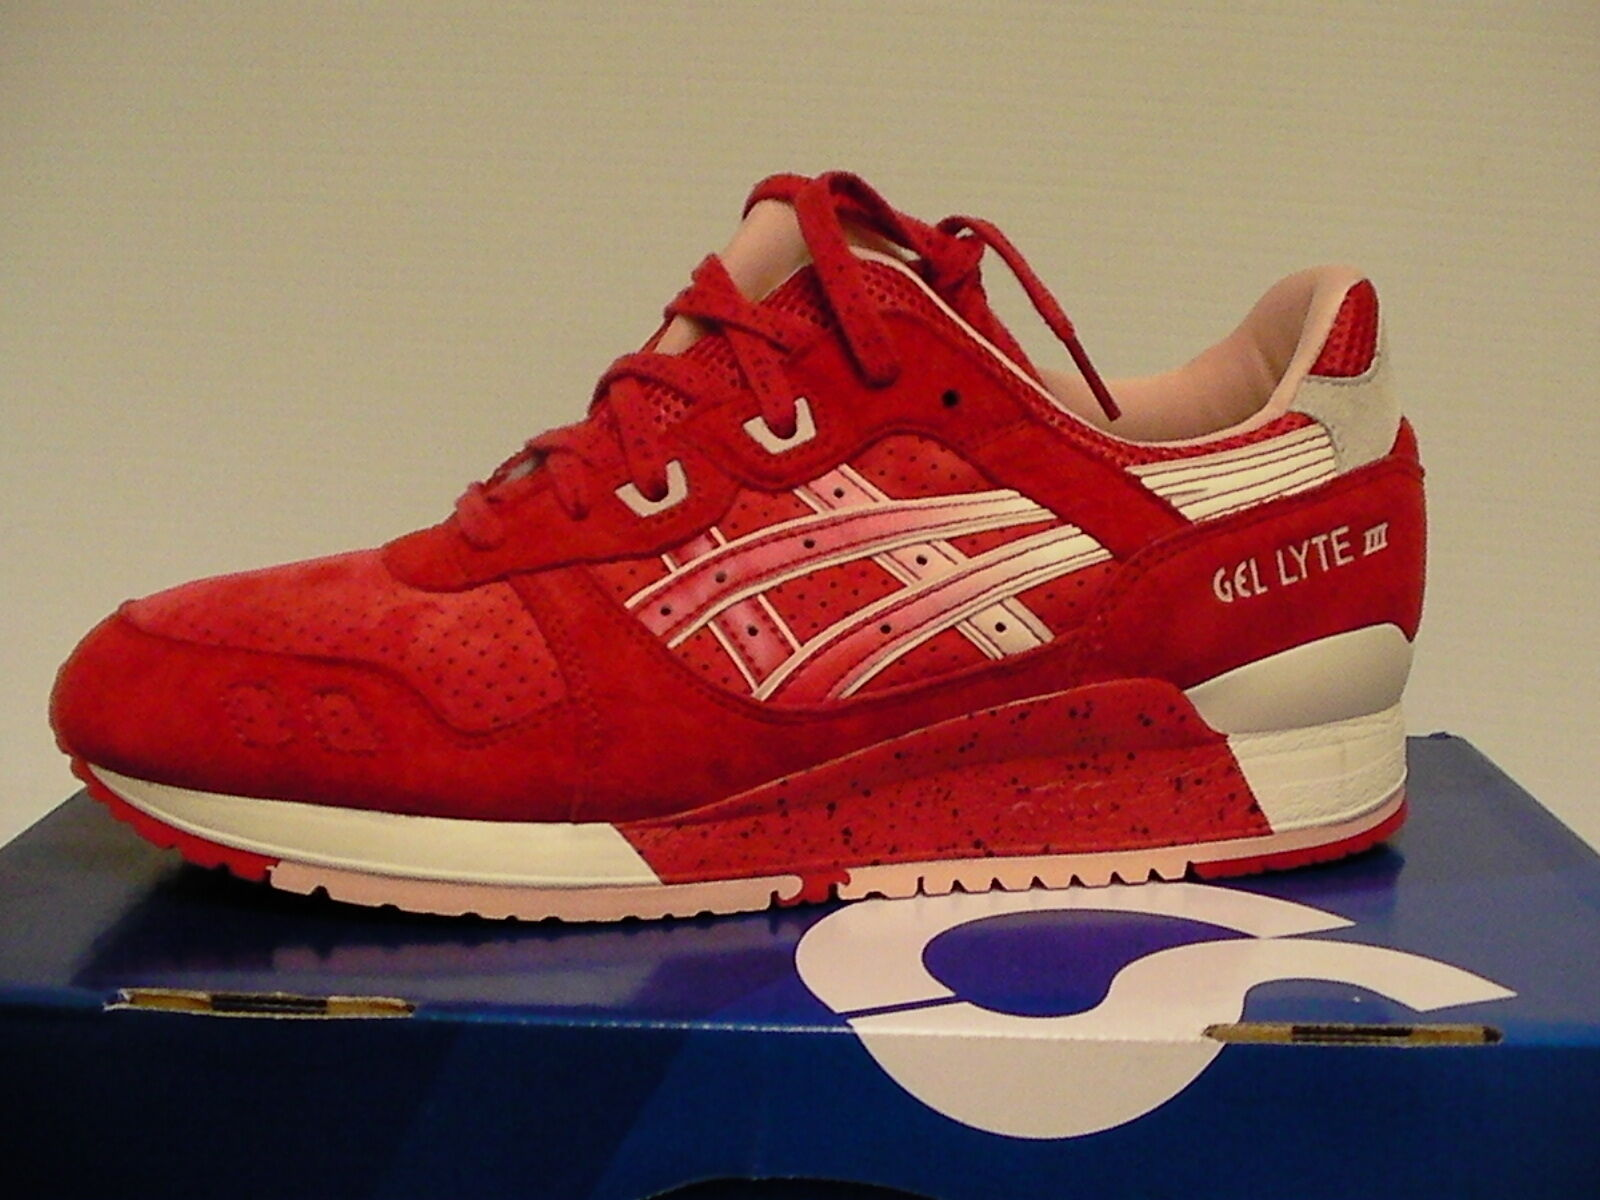 Asics Chaussures Course Gel-Lyte III Taille 7.5 Us Hommes Rouge Crème Neuf